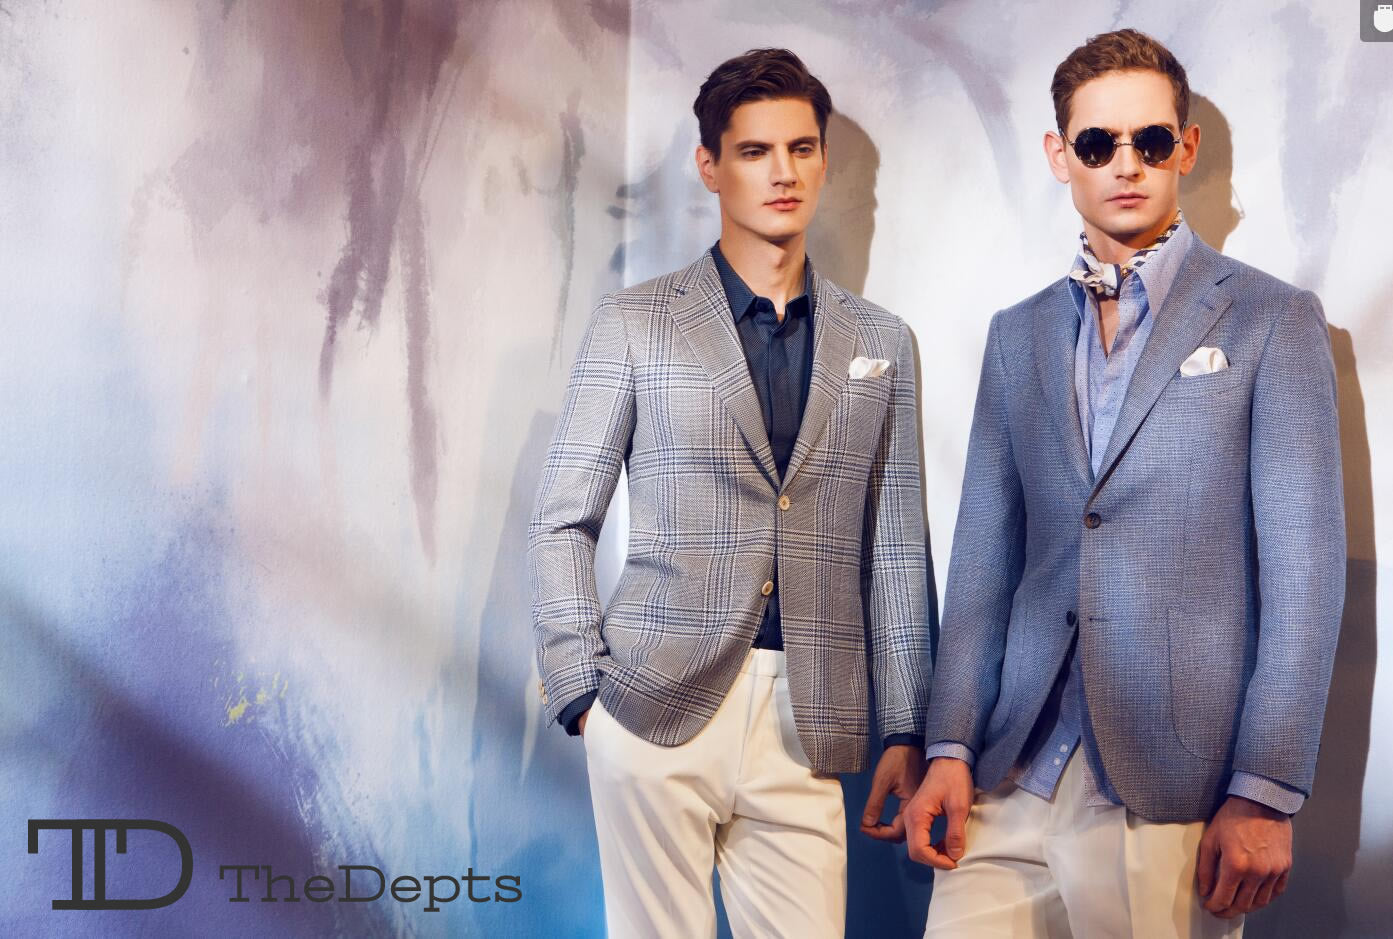 TheDepts Designer Suits for Men, Essential for Your Wardrobe